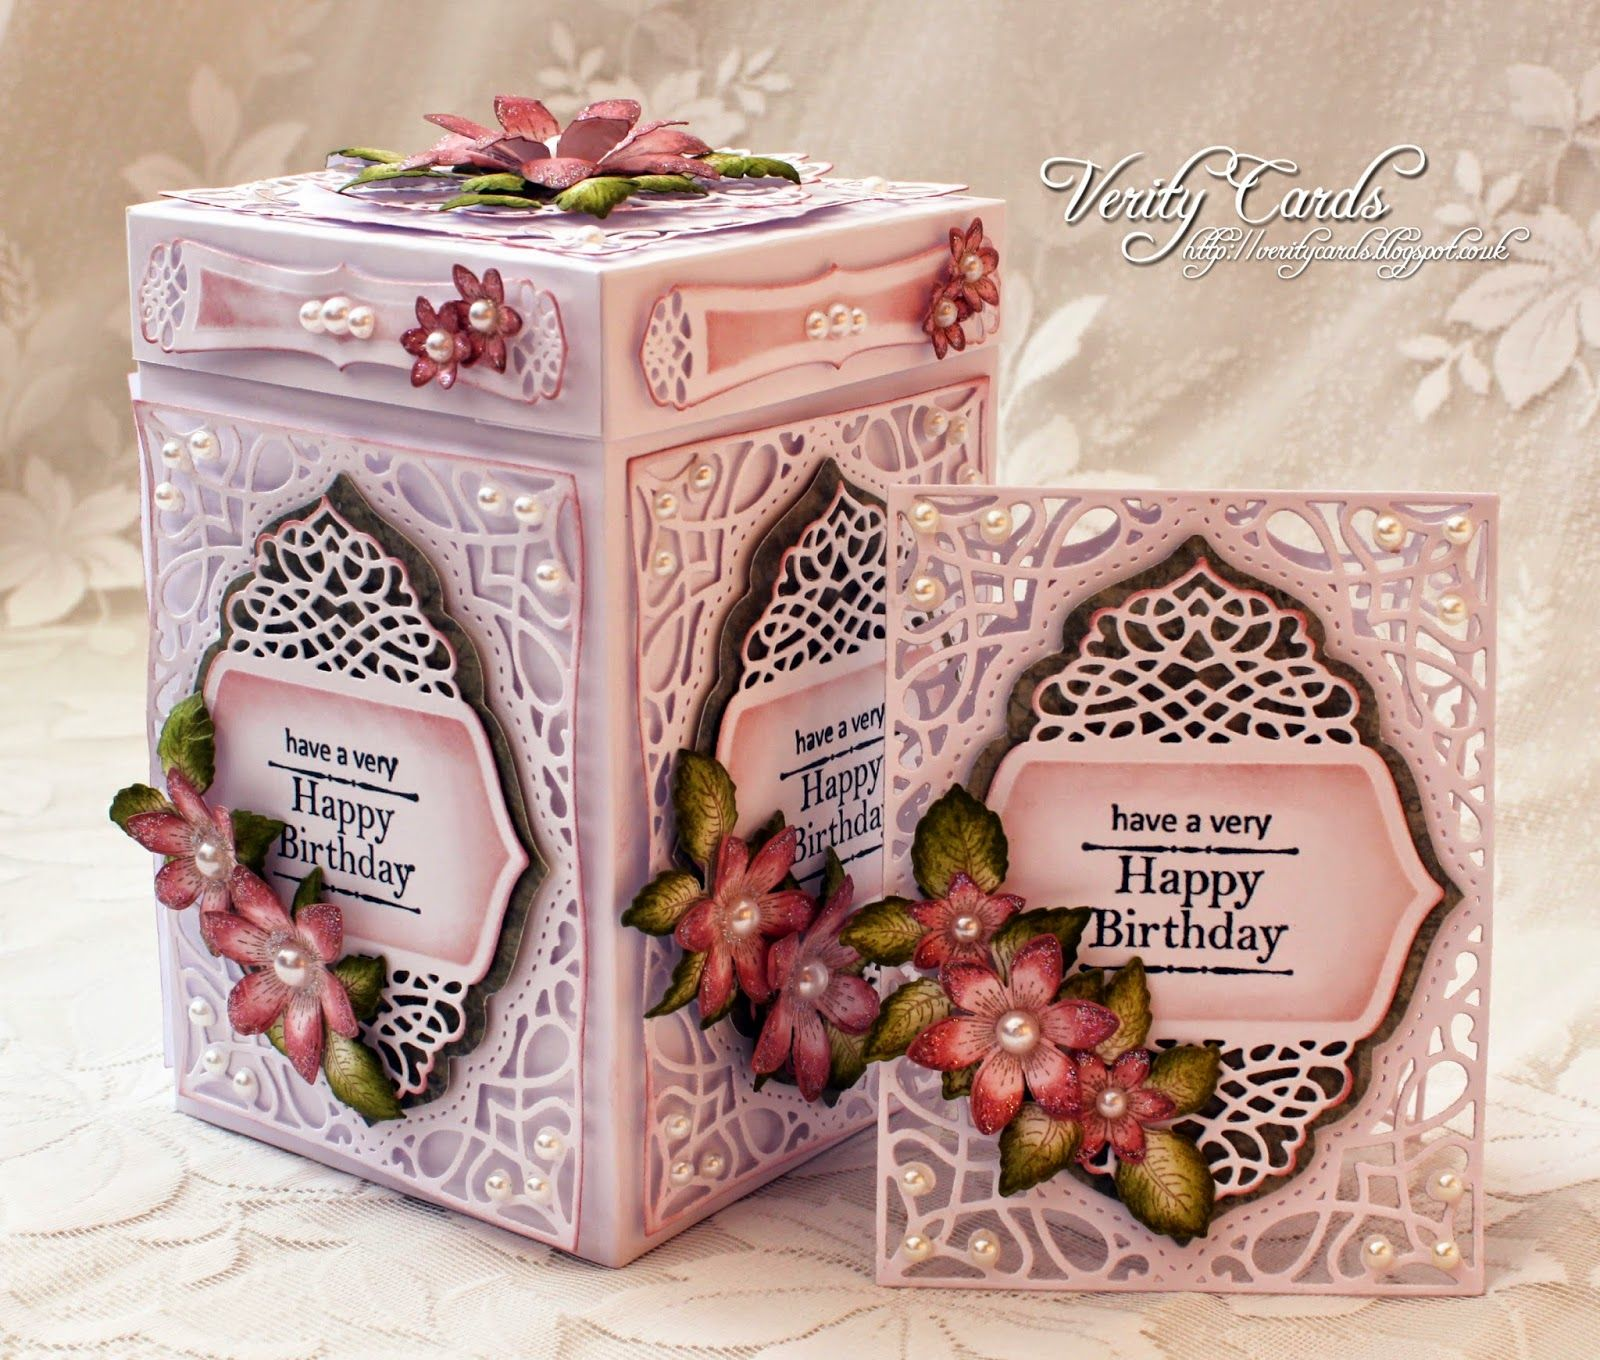 Verity Cards Happy Birthday Box Card Making Pinterest